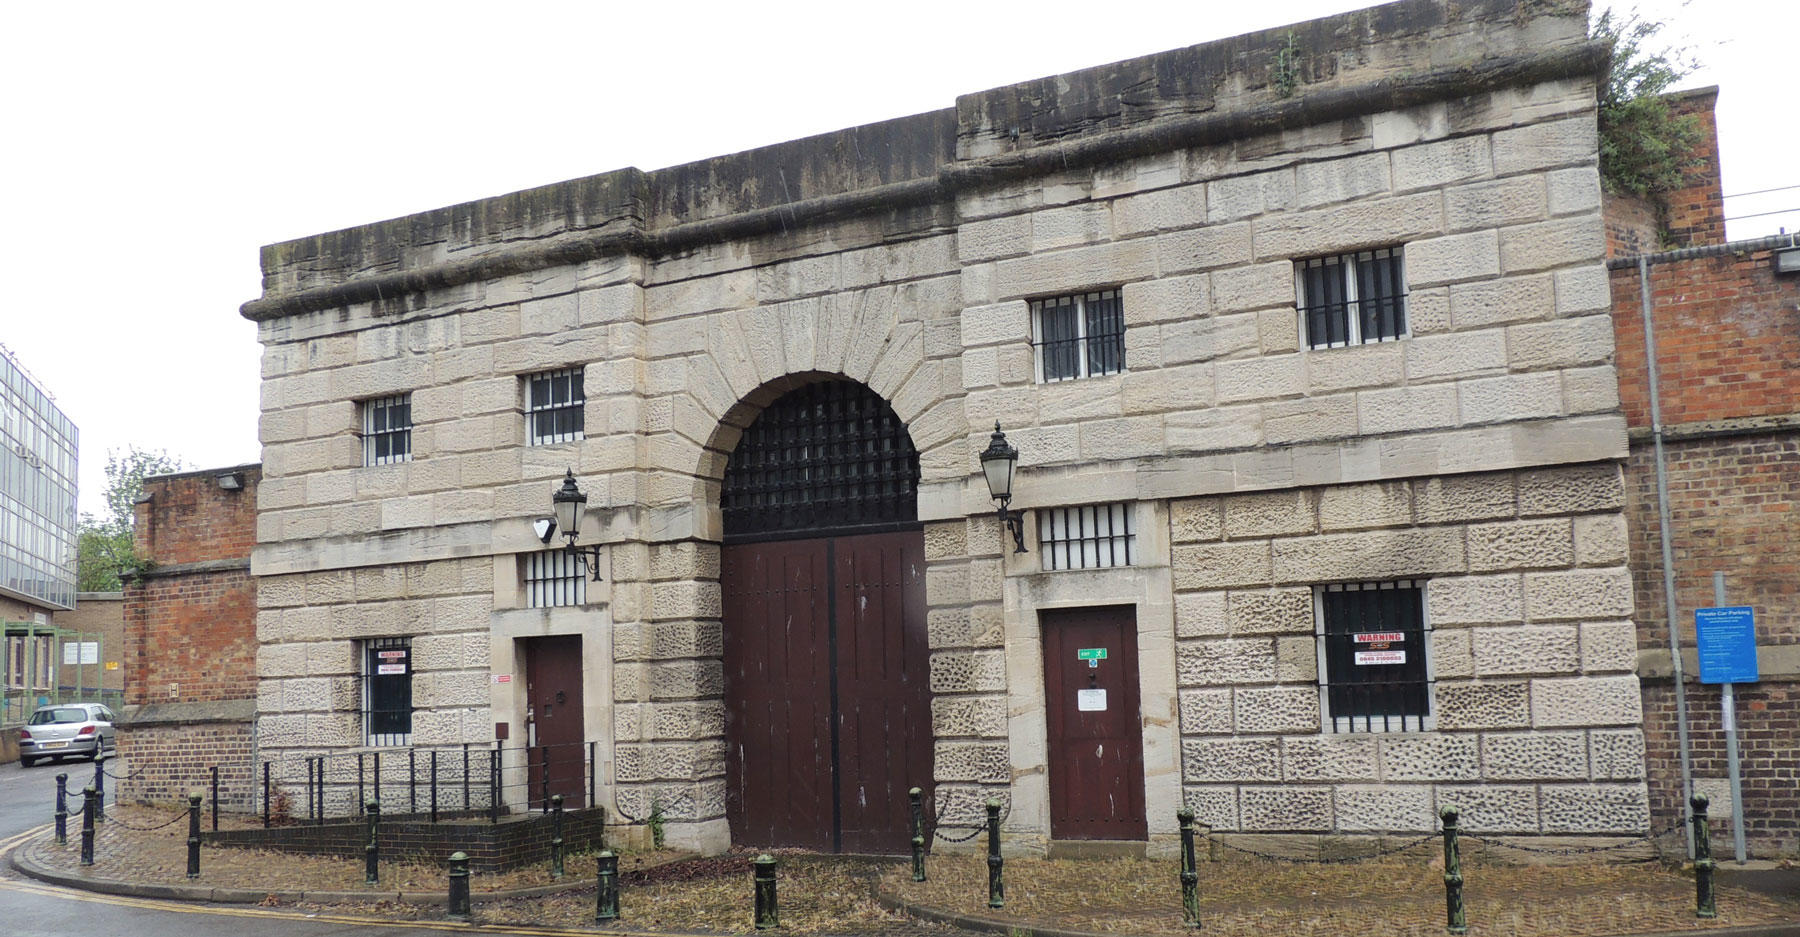 The front gate of HM Prison Gloucester earlier this year.